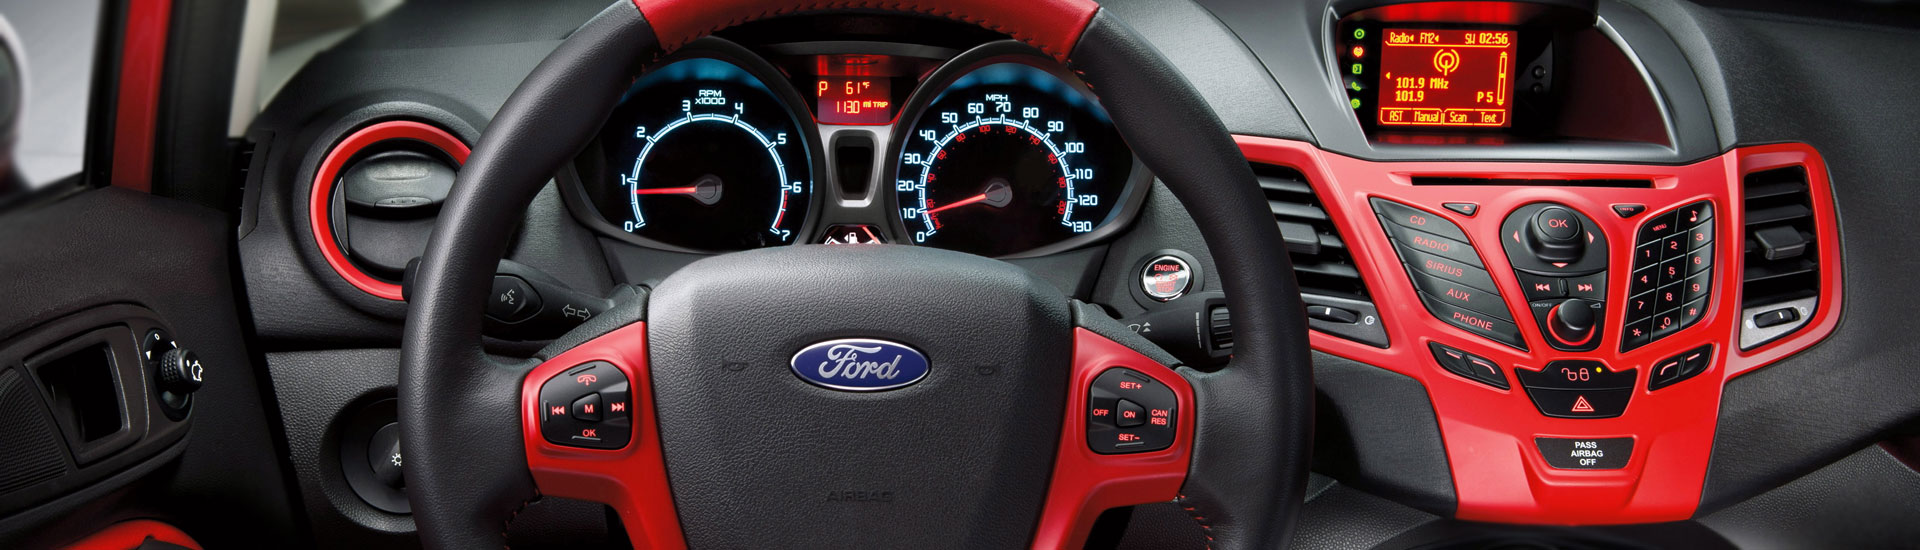 Ford Fiesta Dash Kits Custom Ford Fiesta Dash Kit